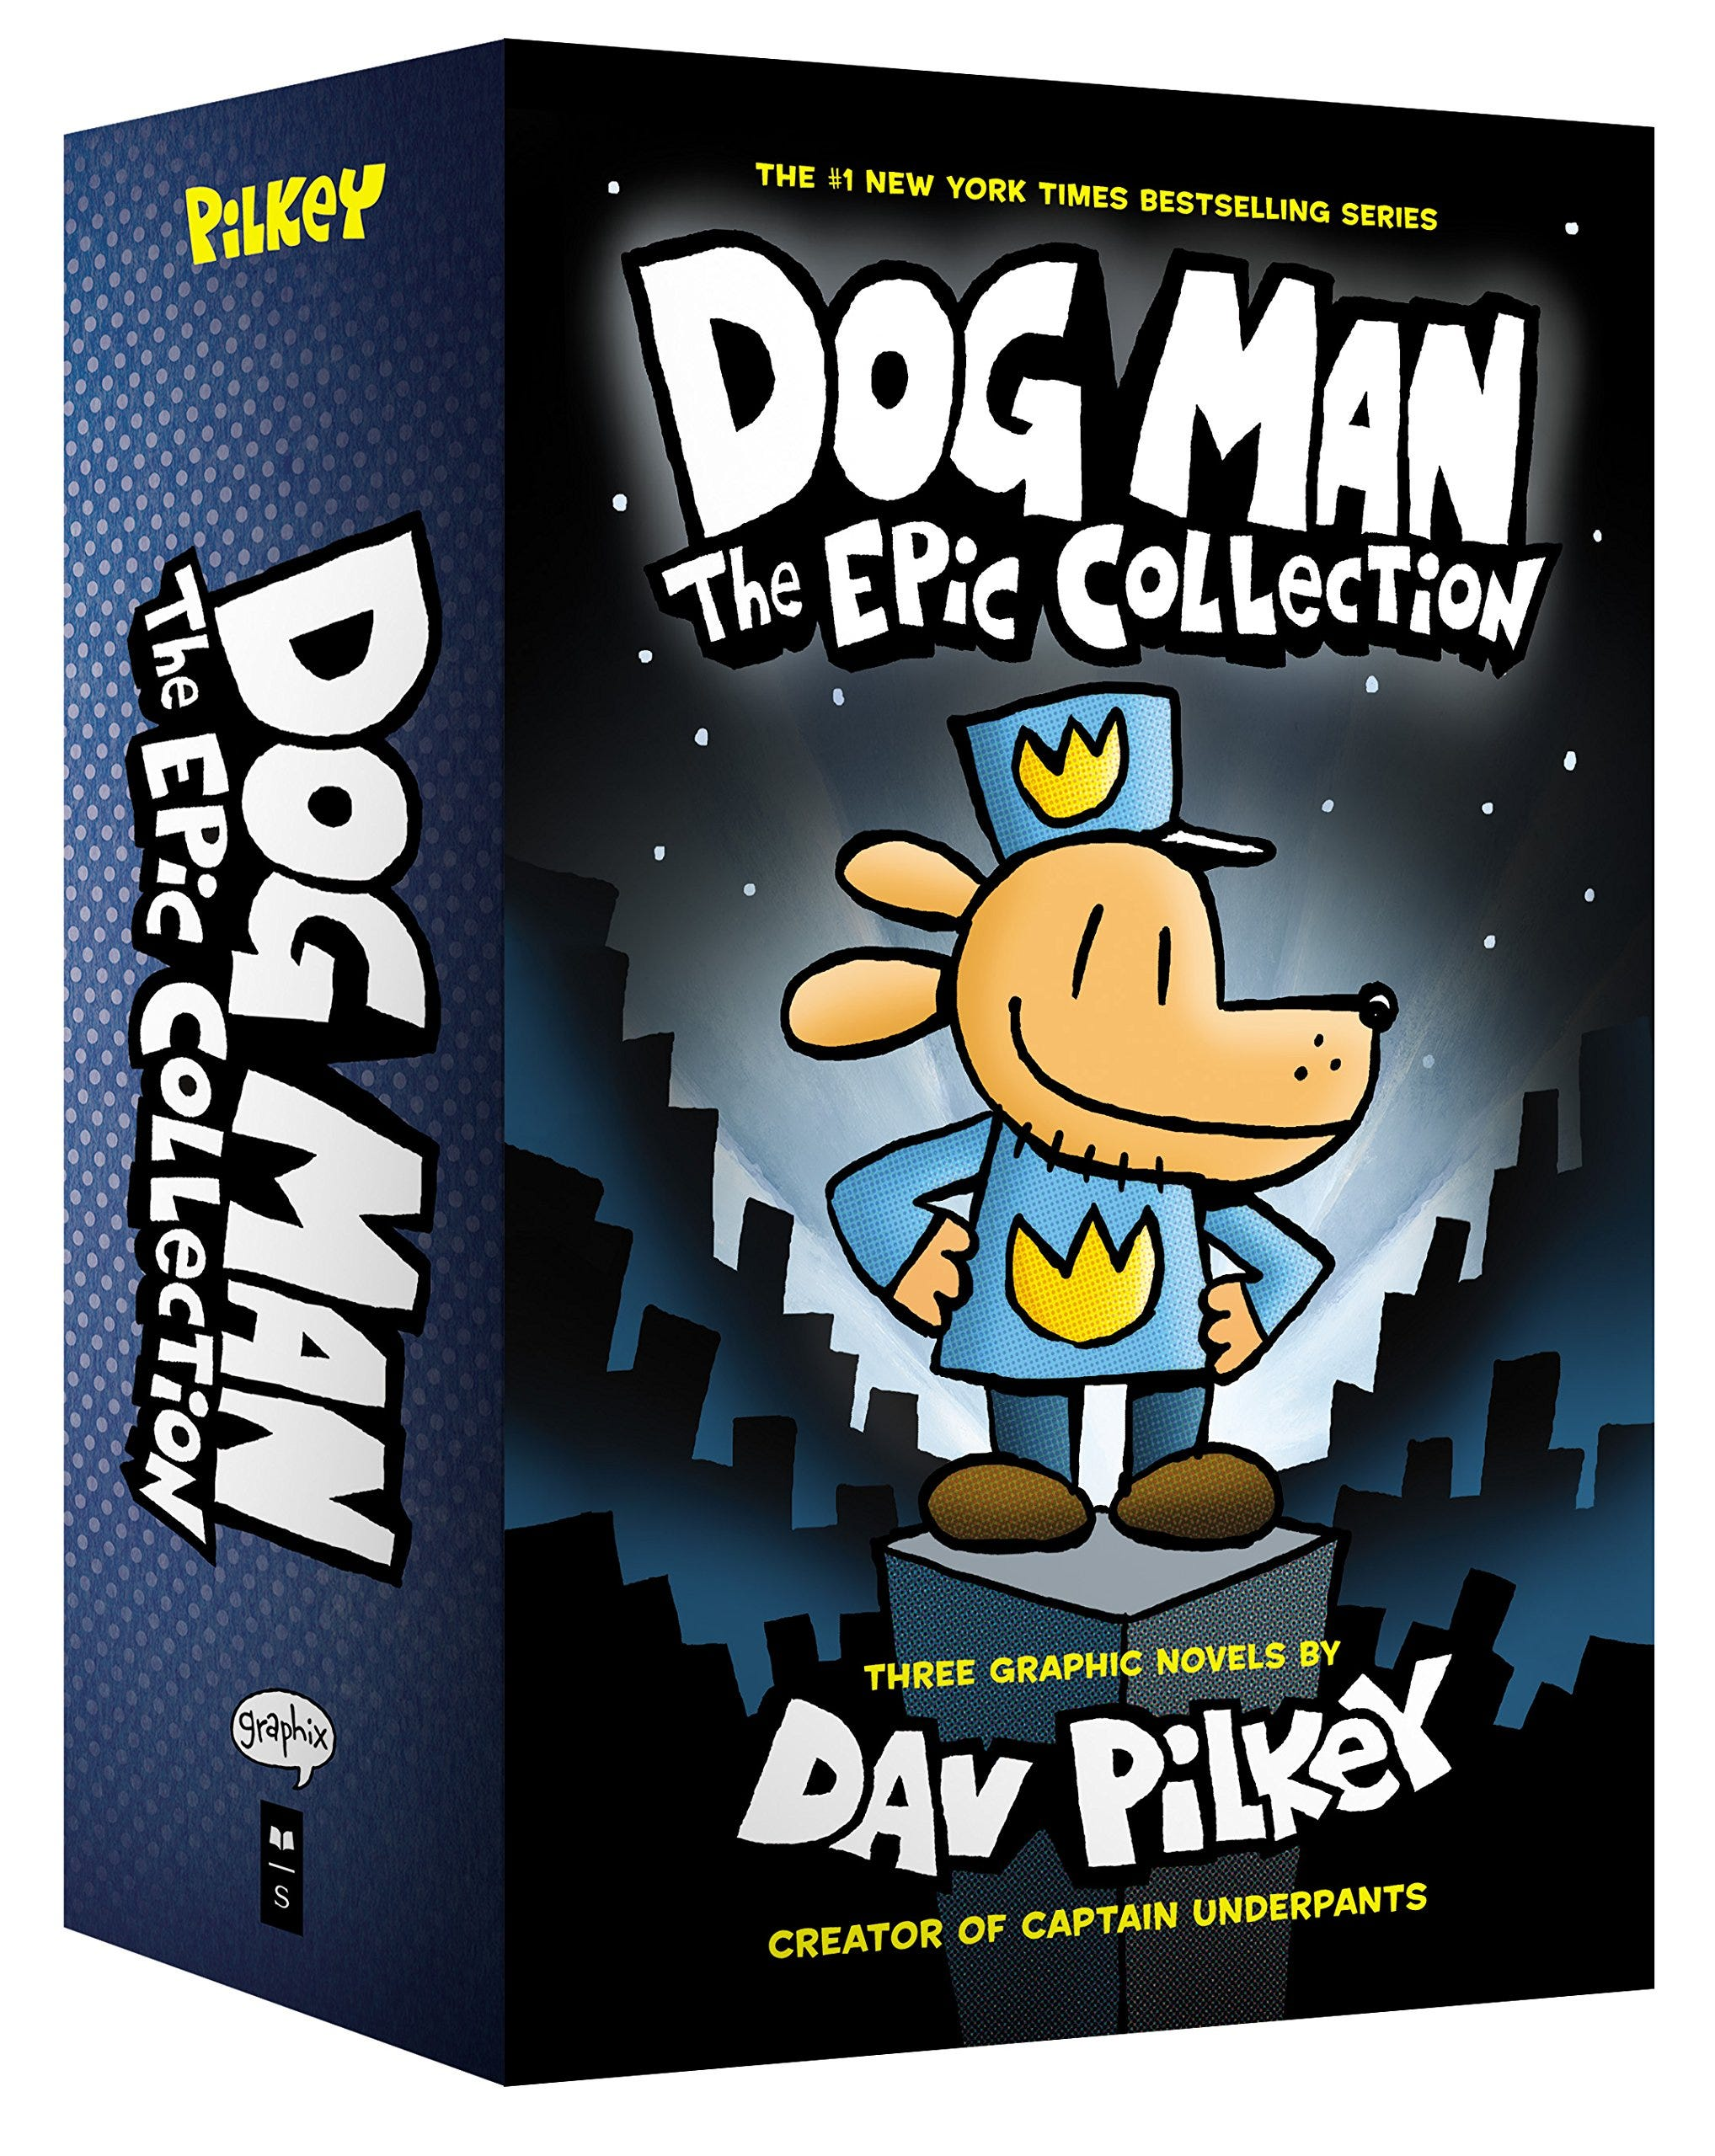 Dog Man The Epic Collection boxed set.